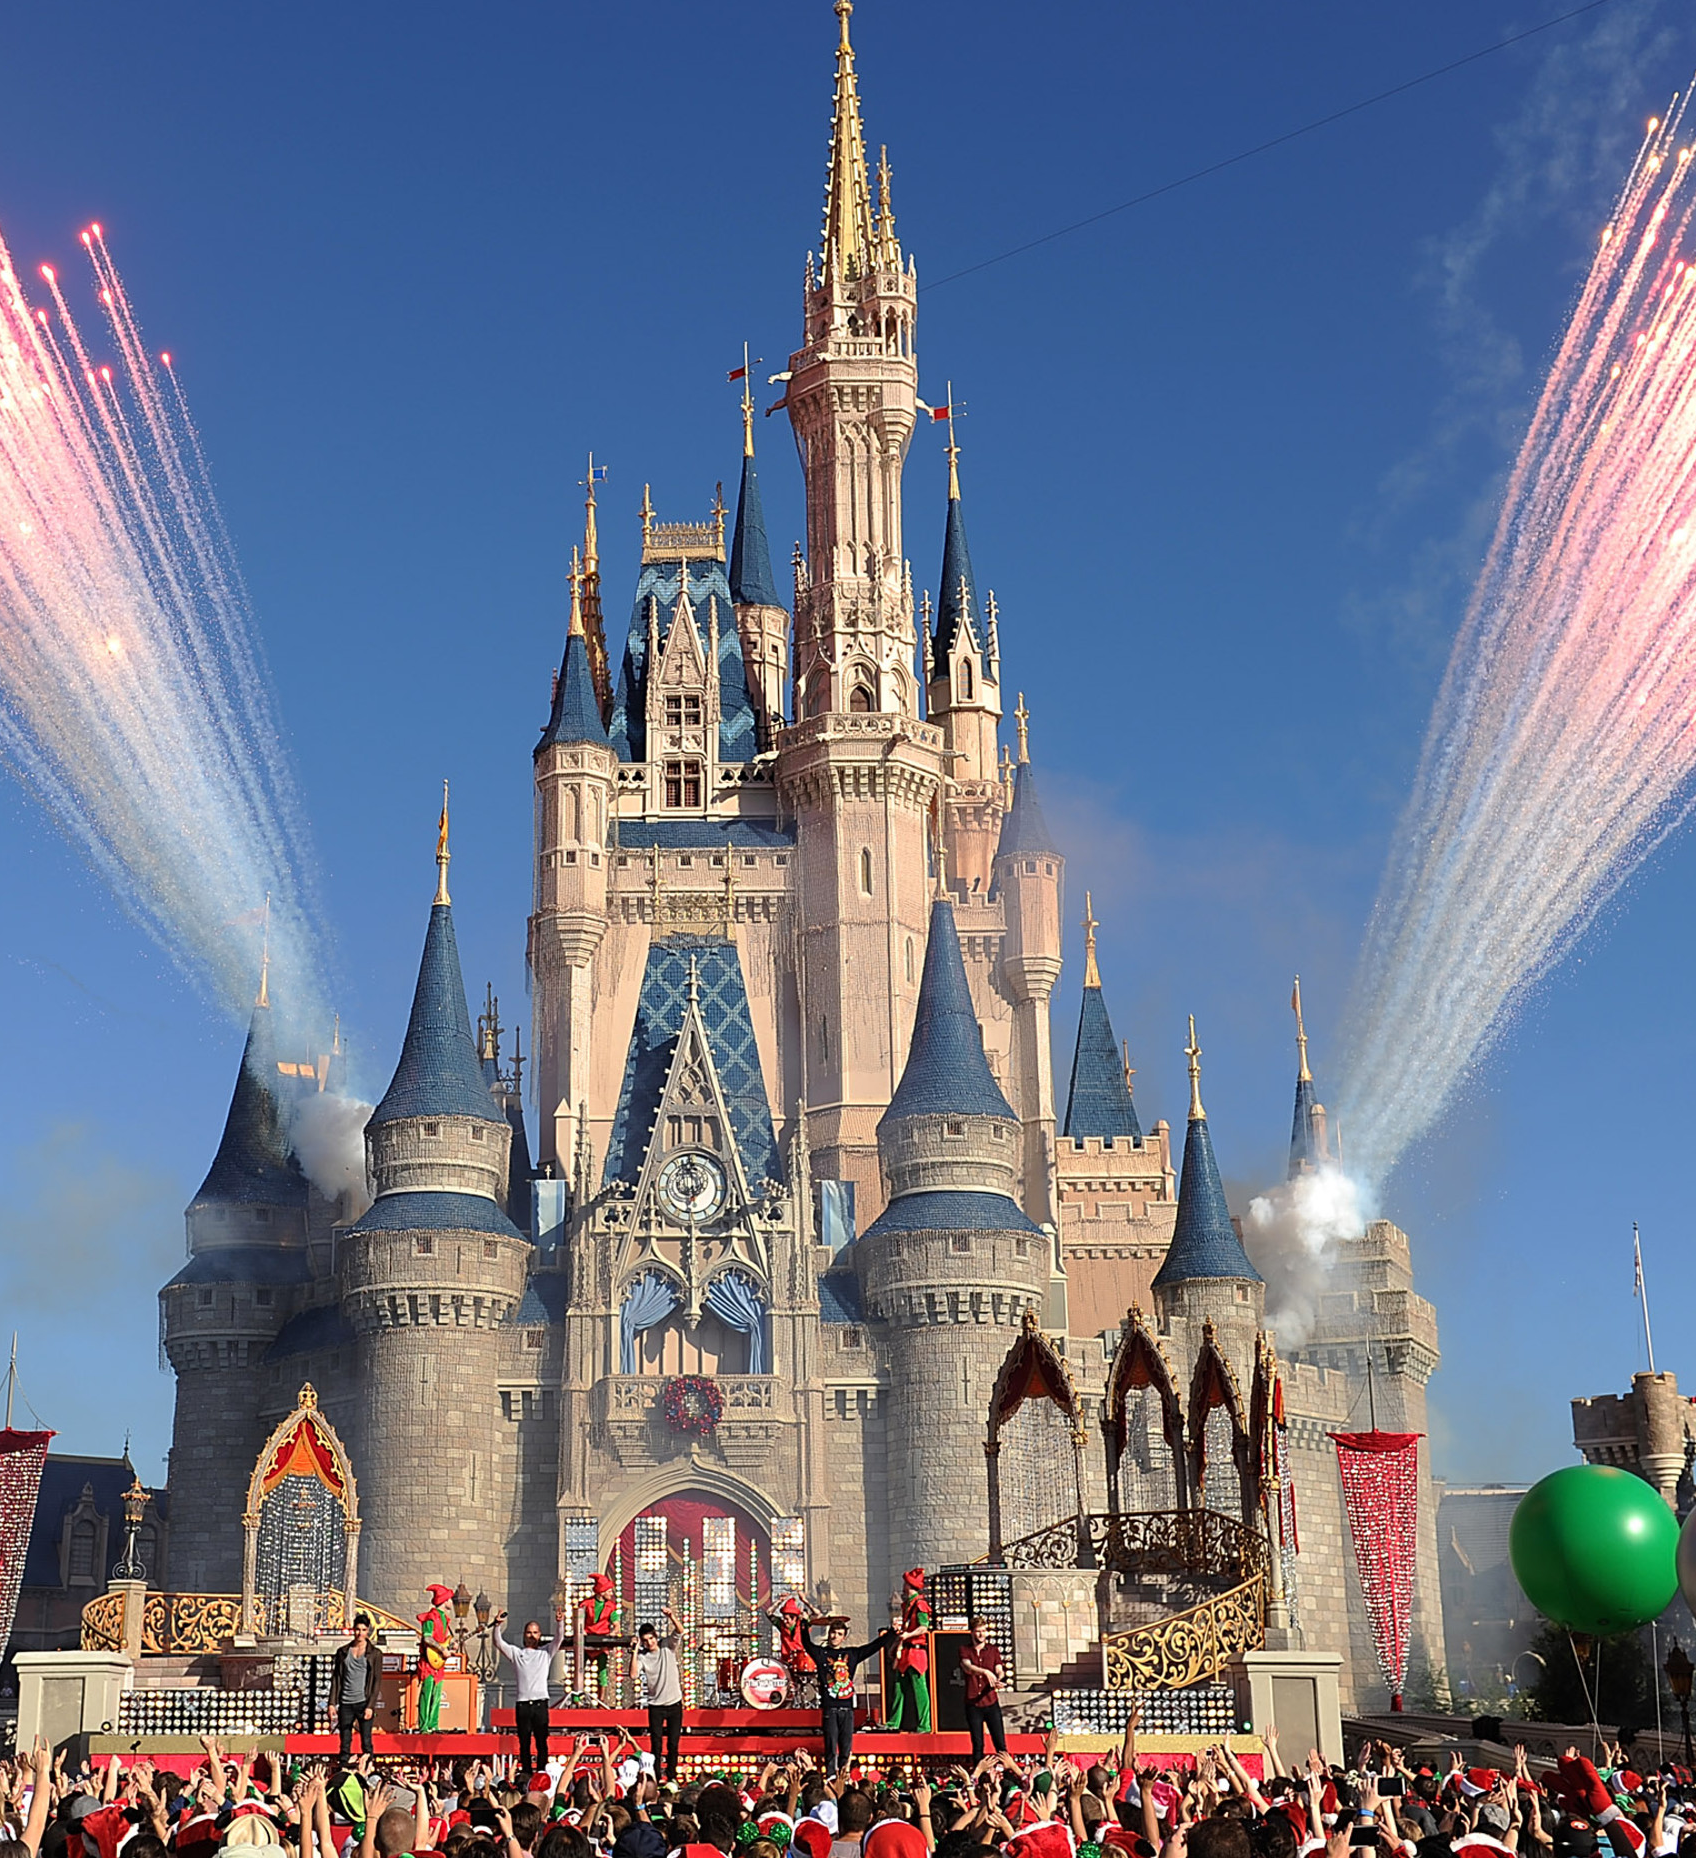 A Visit to the Magic Kingdom - MORNING SESSION | Ages 4-8